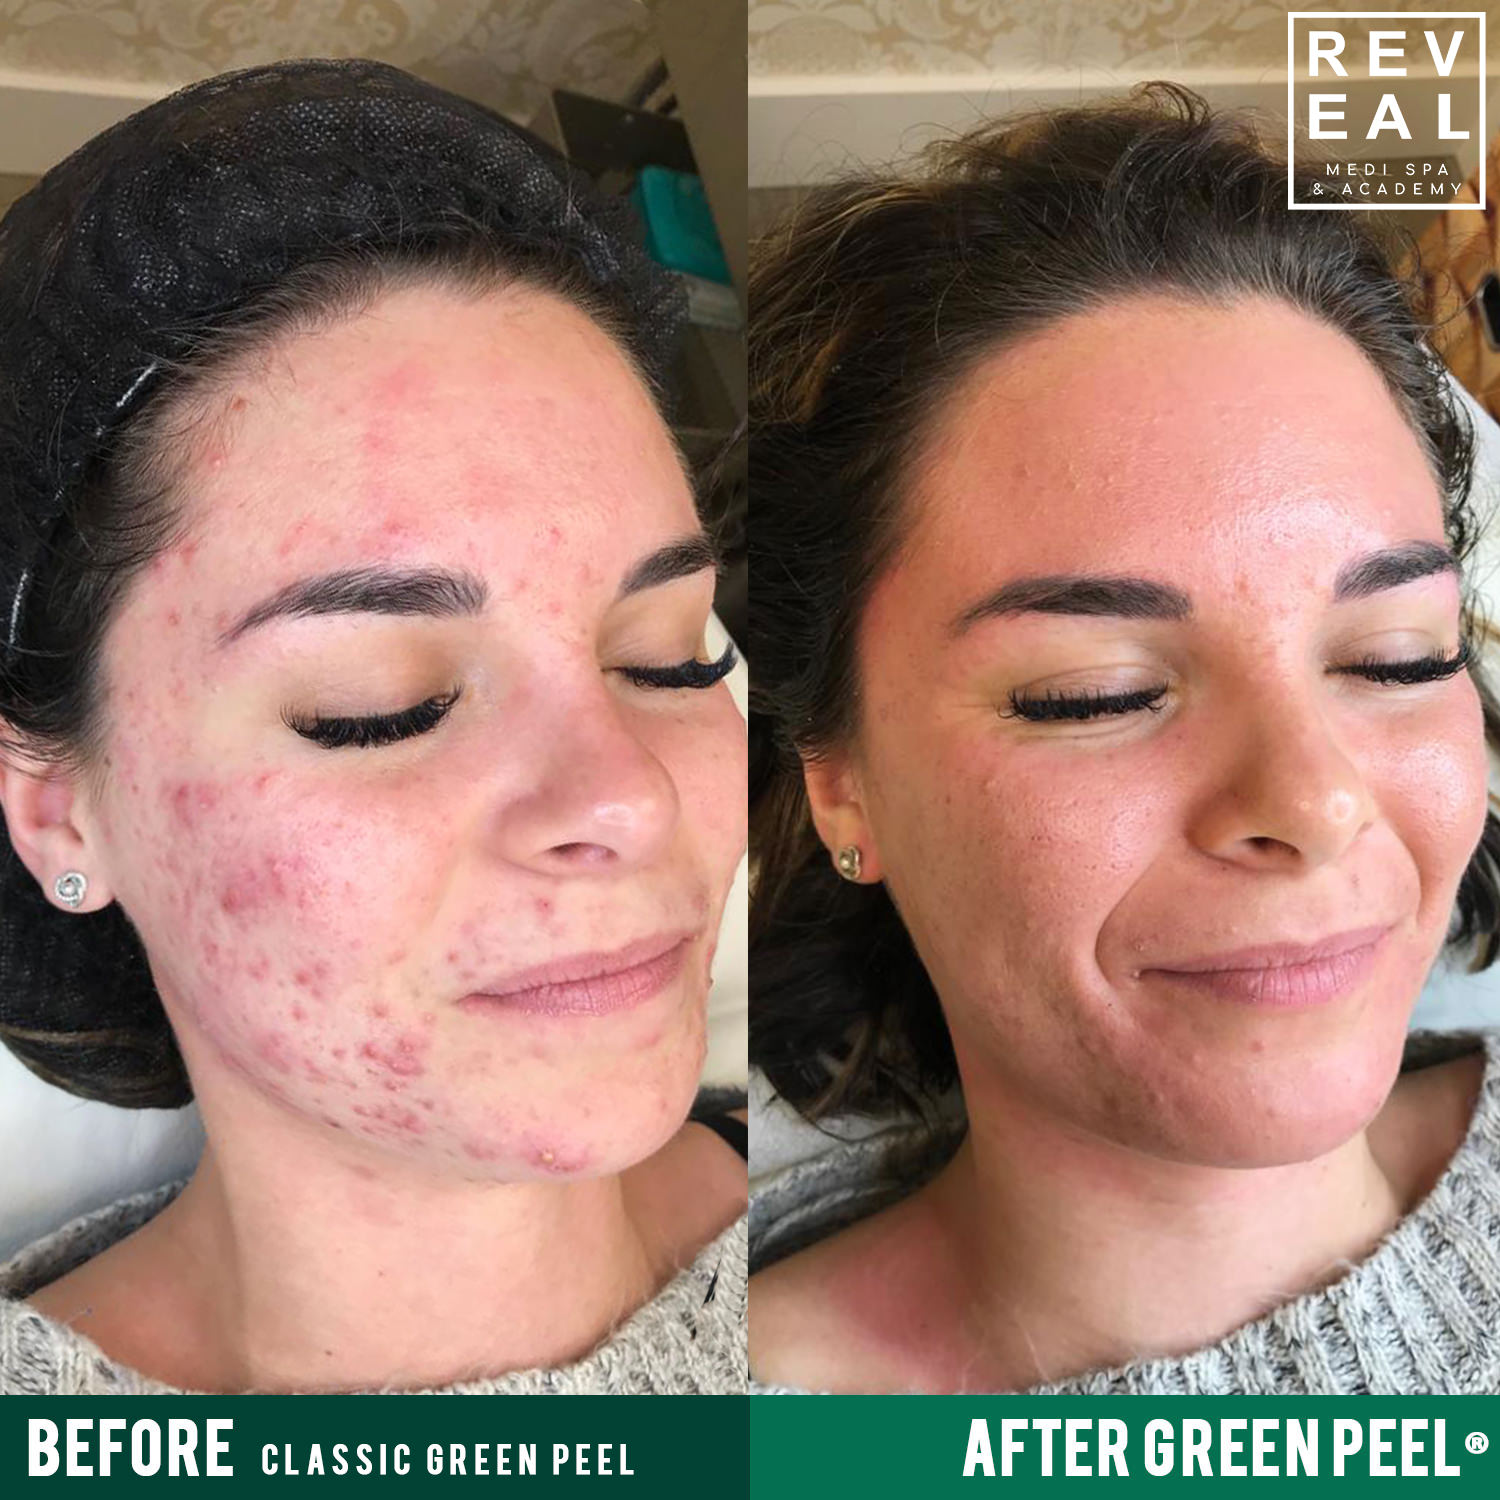 The level 3 treatment can target areas on the body, not just the face! - Targets sagging skin on the body on areas other than the face such as chest, abdominal walls, upper arms, thighs.The difference between Level 3 (Classic) and Level 1 and 2 is that the Level 3 (Classic) involves a deeper pressure applied when massaging the herbal mask onto the skin & has a peeling effect.